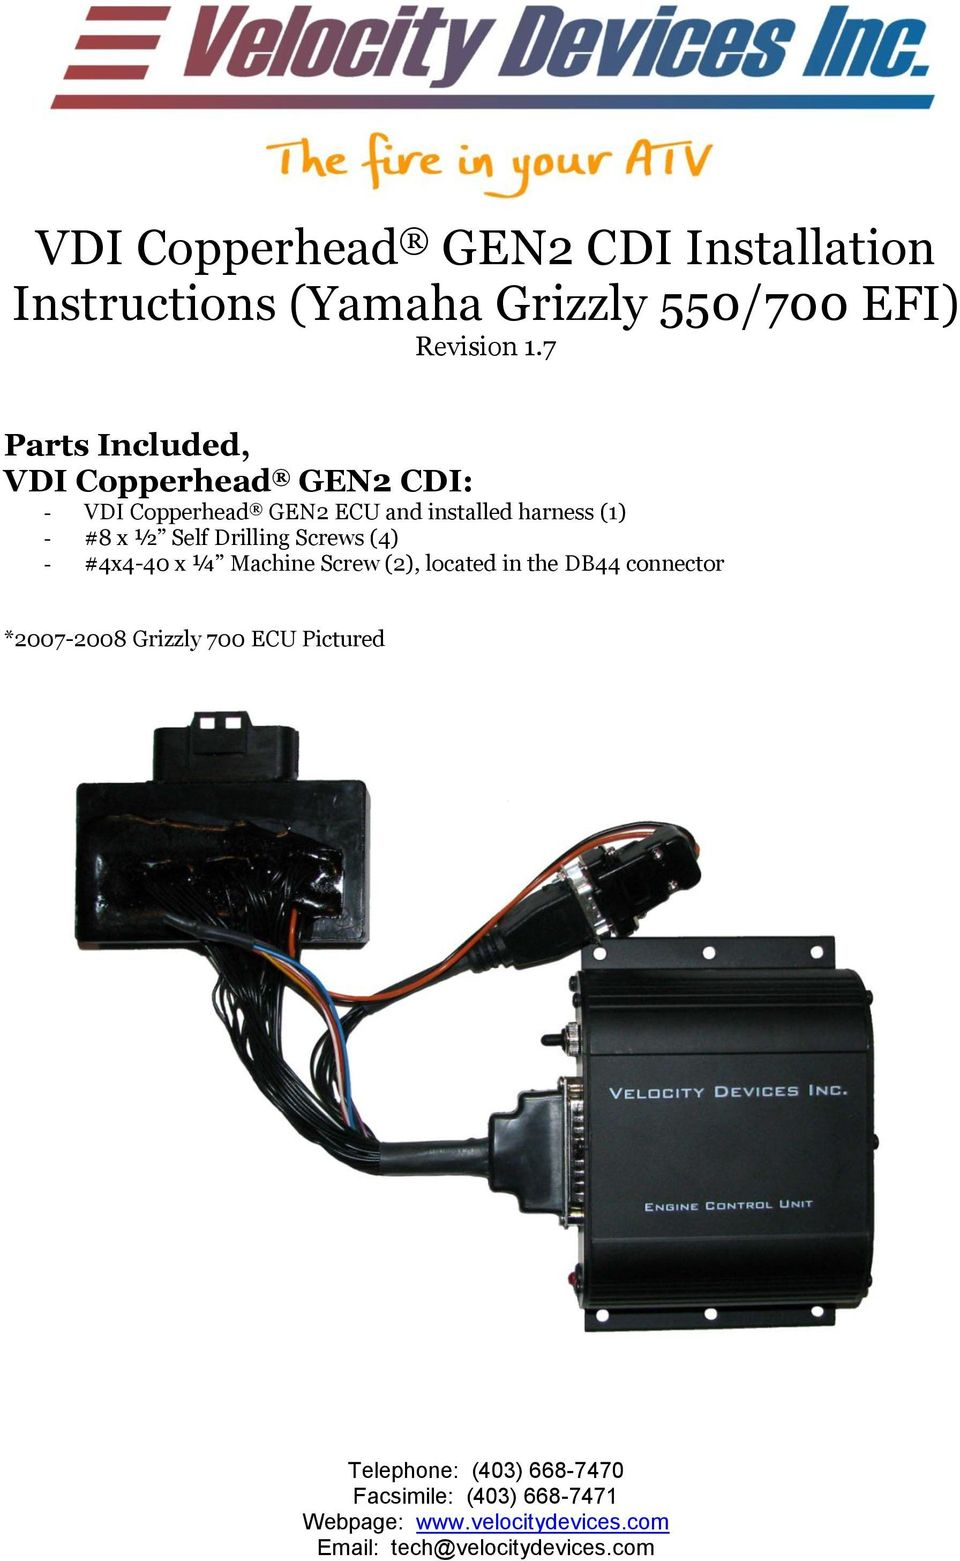 vdi copperhead gen2 cdi installation instructions yamaha grizzly rh docplayer net